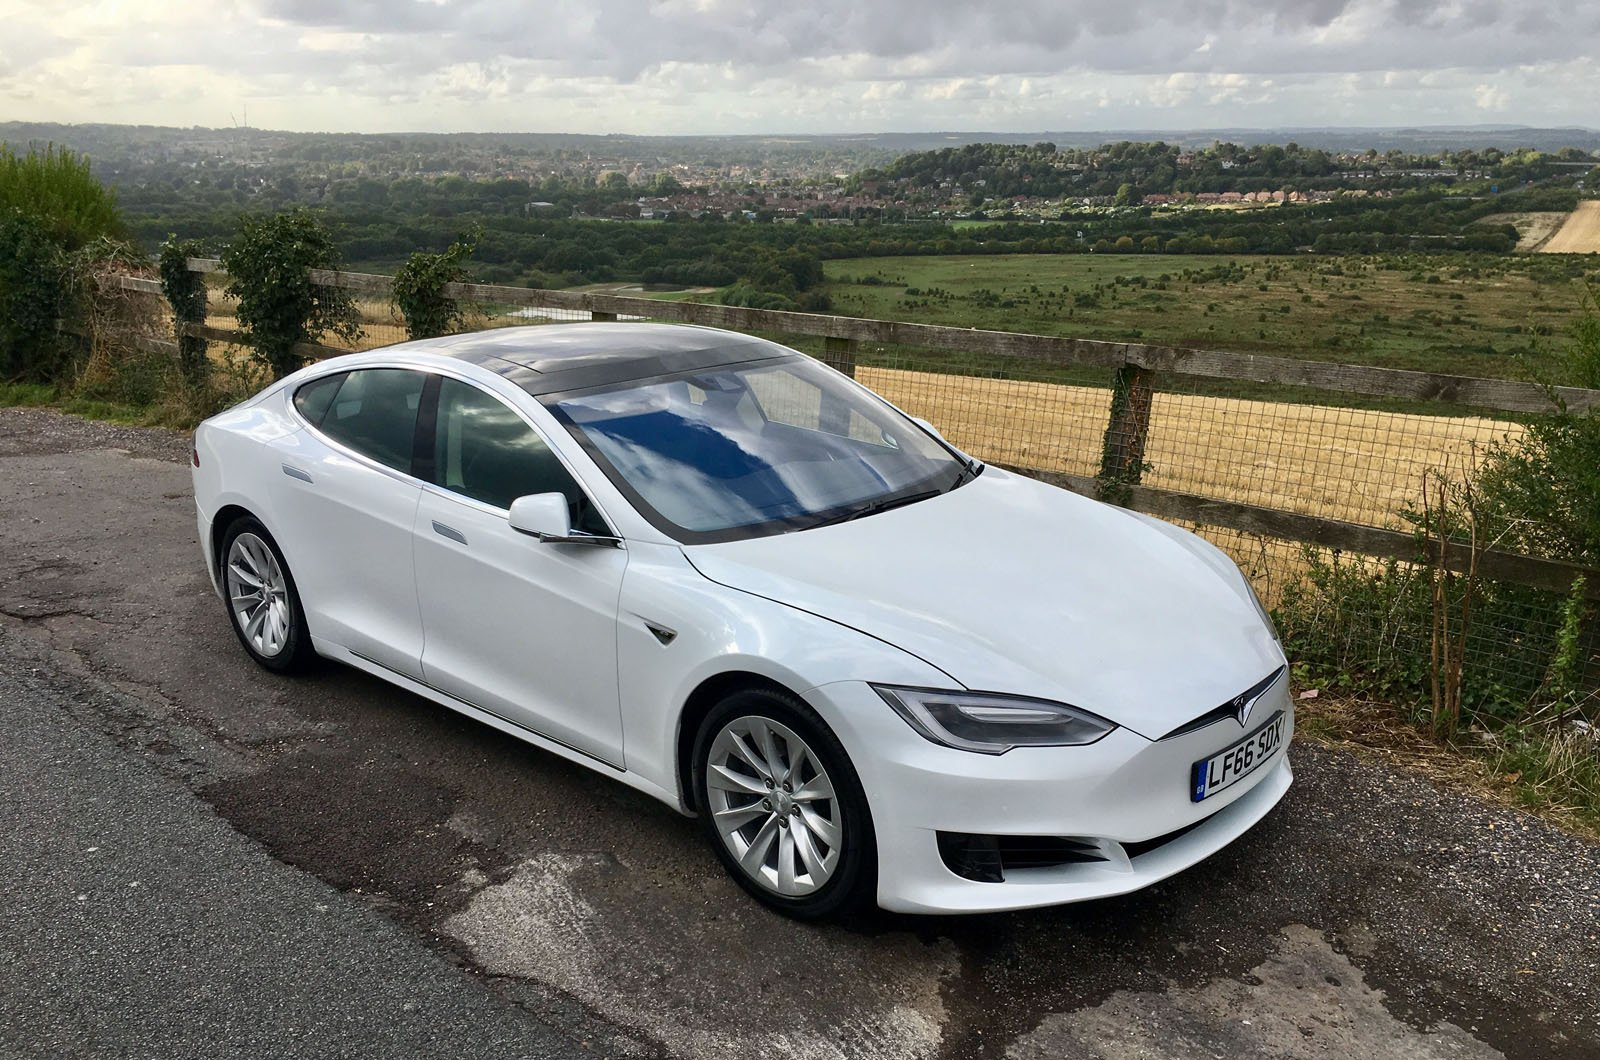 Used Tesla Model S long-termer near Winchester, Hampshire